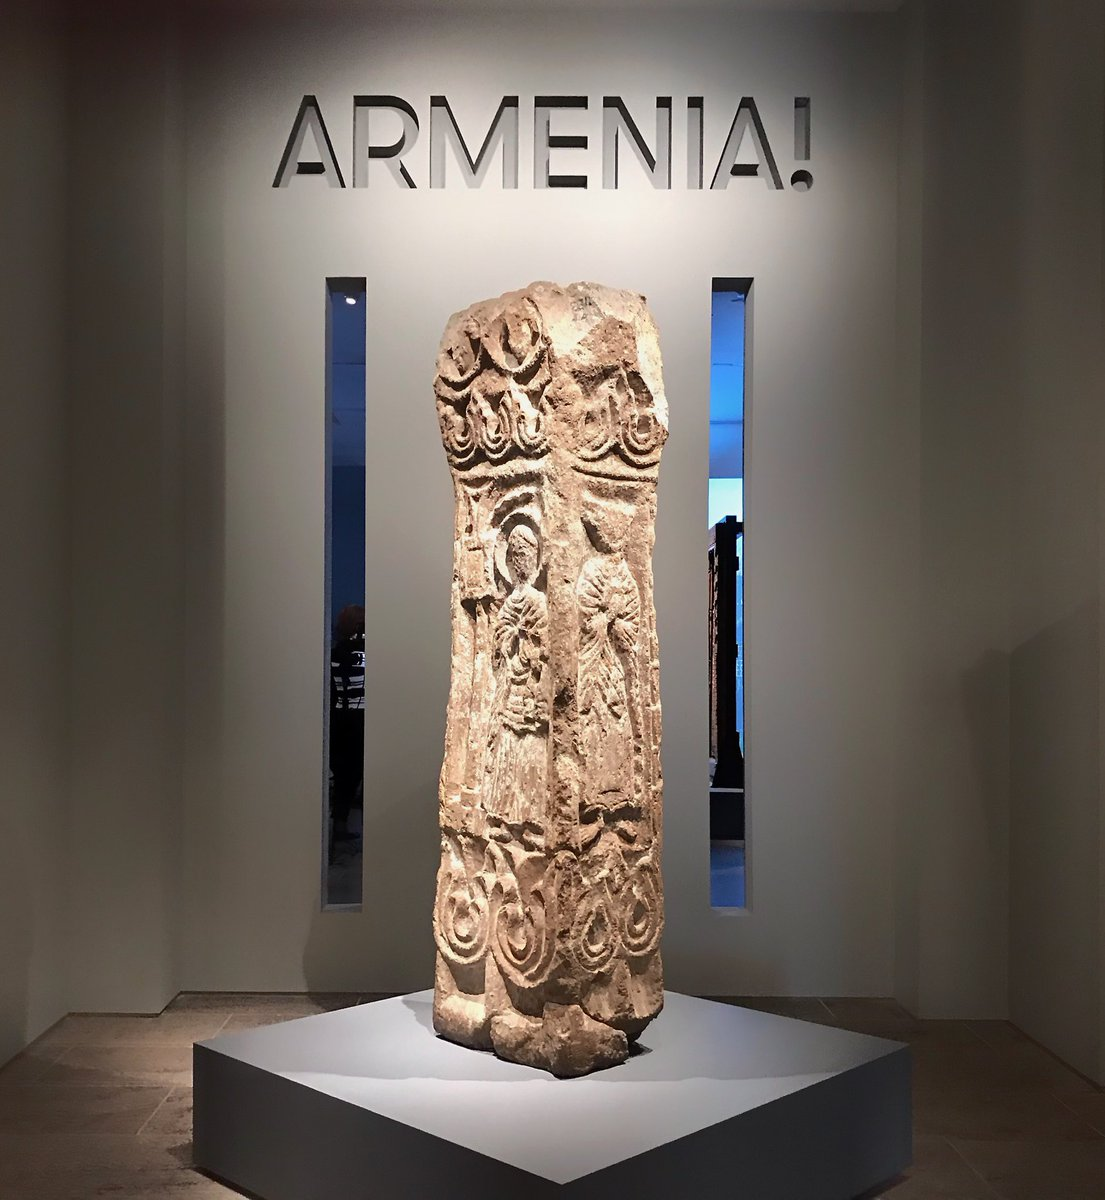 """This morning we're at the press preview for """"Armenia!"""" https://t.co/PUY1gfqX4b #MetArmenia"""